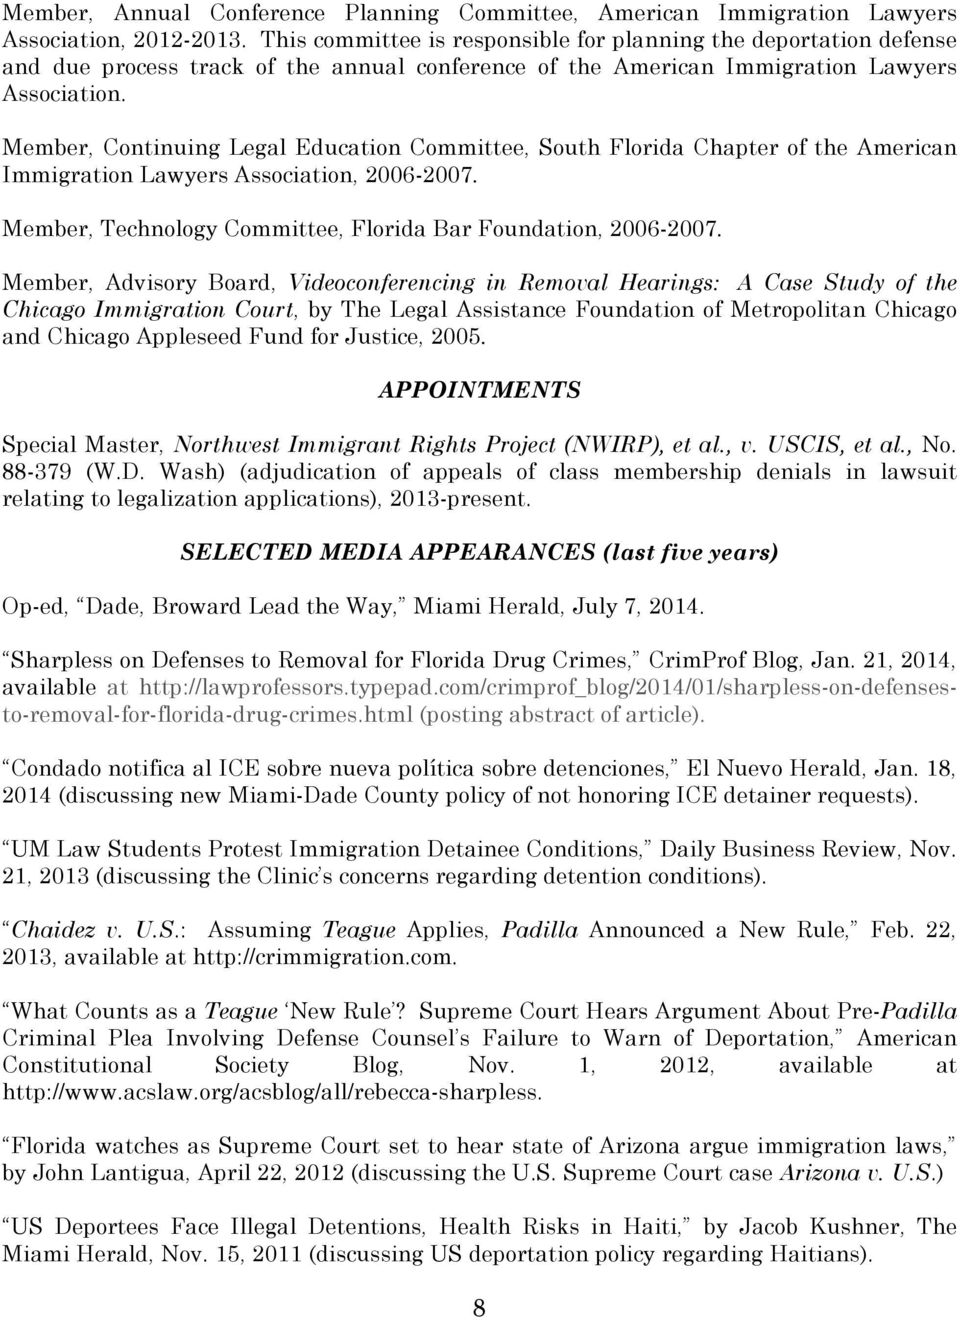 Member, Continuing Legal Education Committee, South Florida Chapter of the American Immigration Lawyers Association, 2006-2007. Member, Technology Committee, Florida Bar Foundation, 2006-2007.